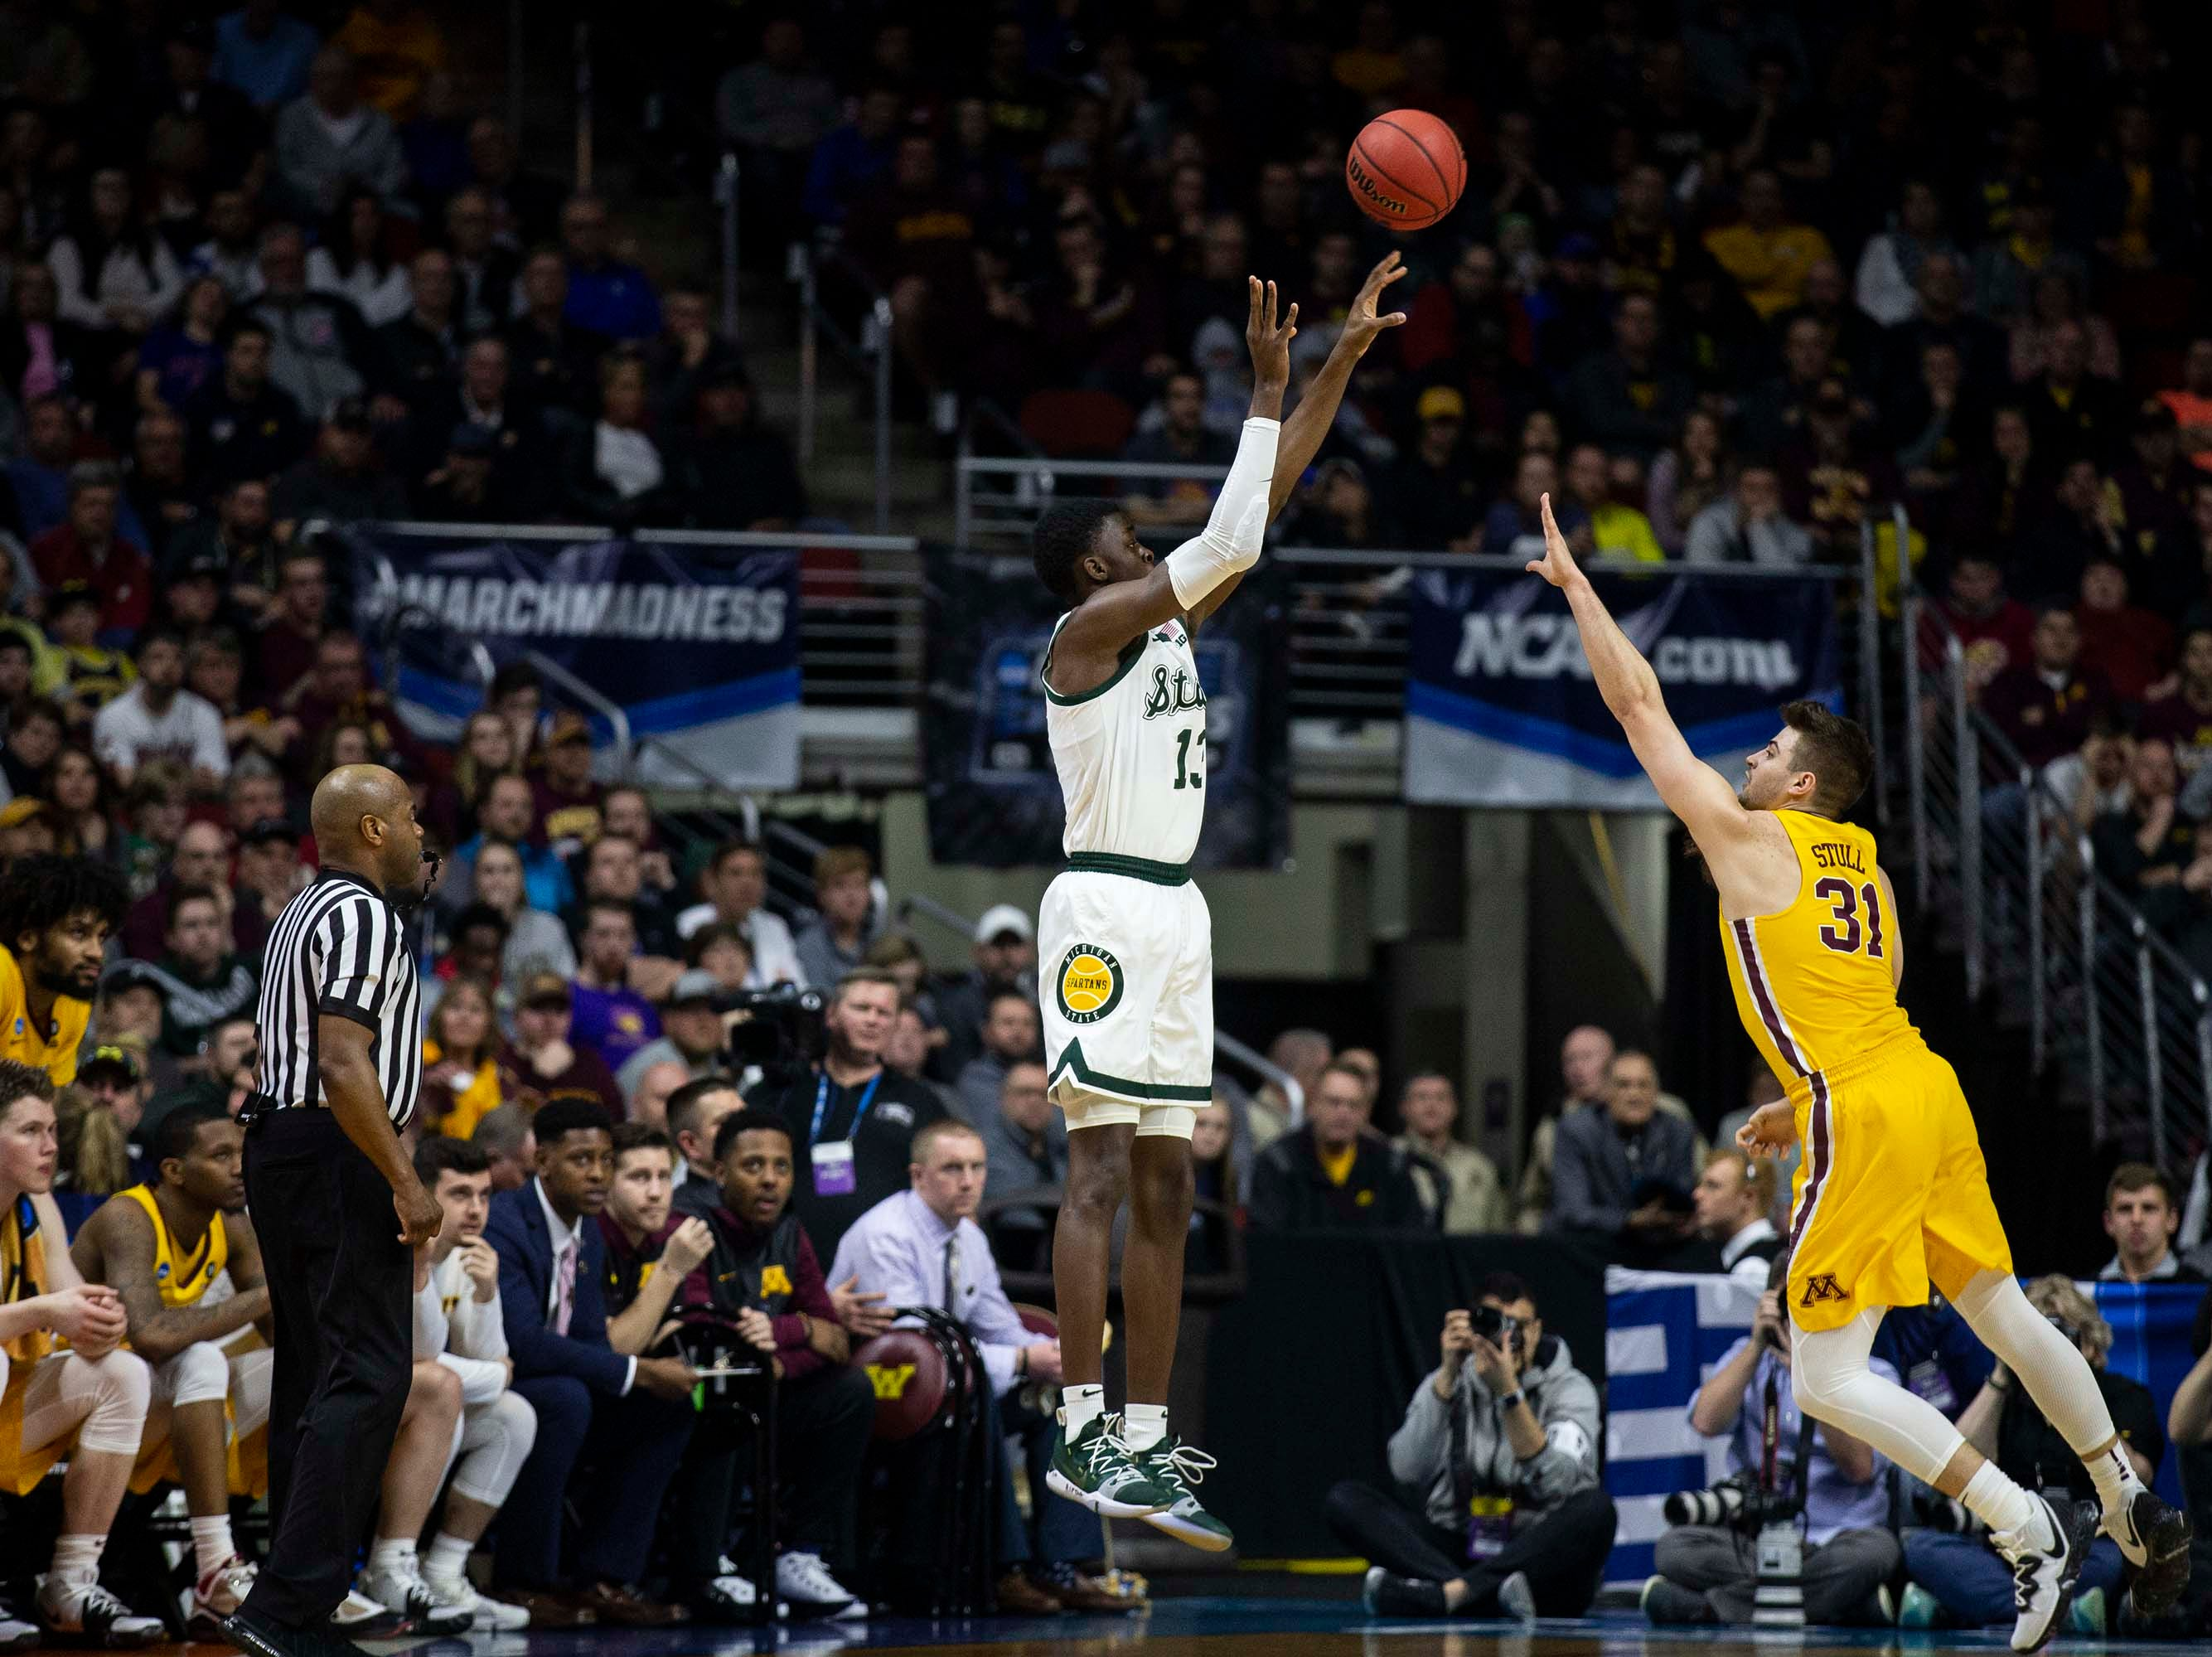 Michigan State's Gabe Brown shoots the ball during the NCAA Tournament second-round match-up between Minnesota and Michigan State on Saturday, March 23, 2019, in Wells Fargo Arena in Des Moines, Iowa.